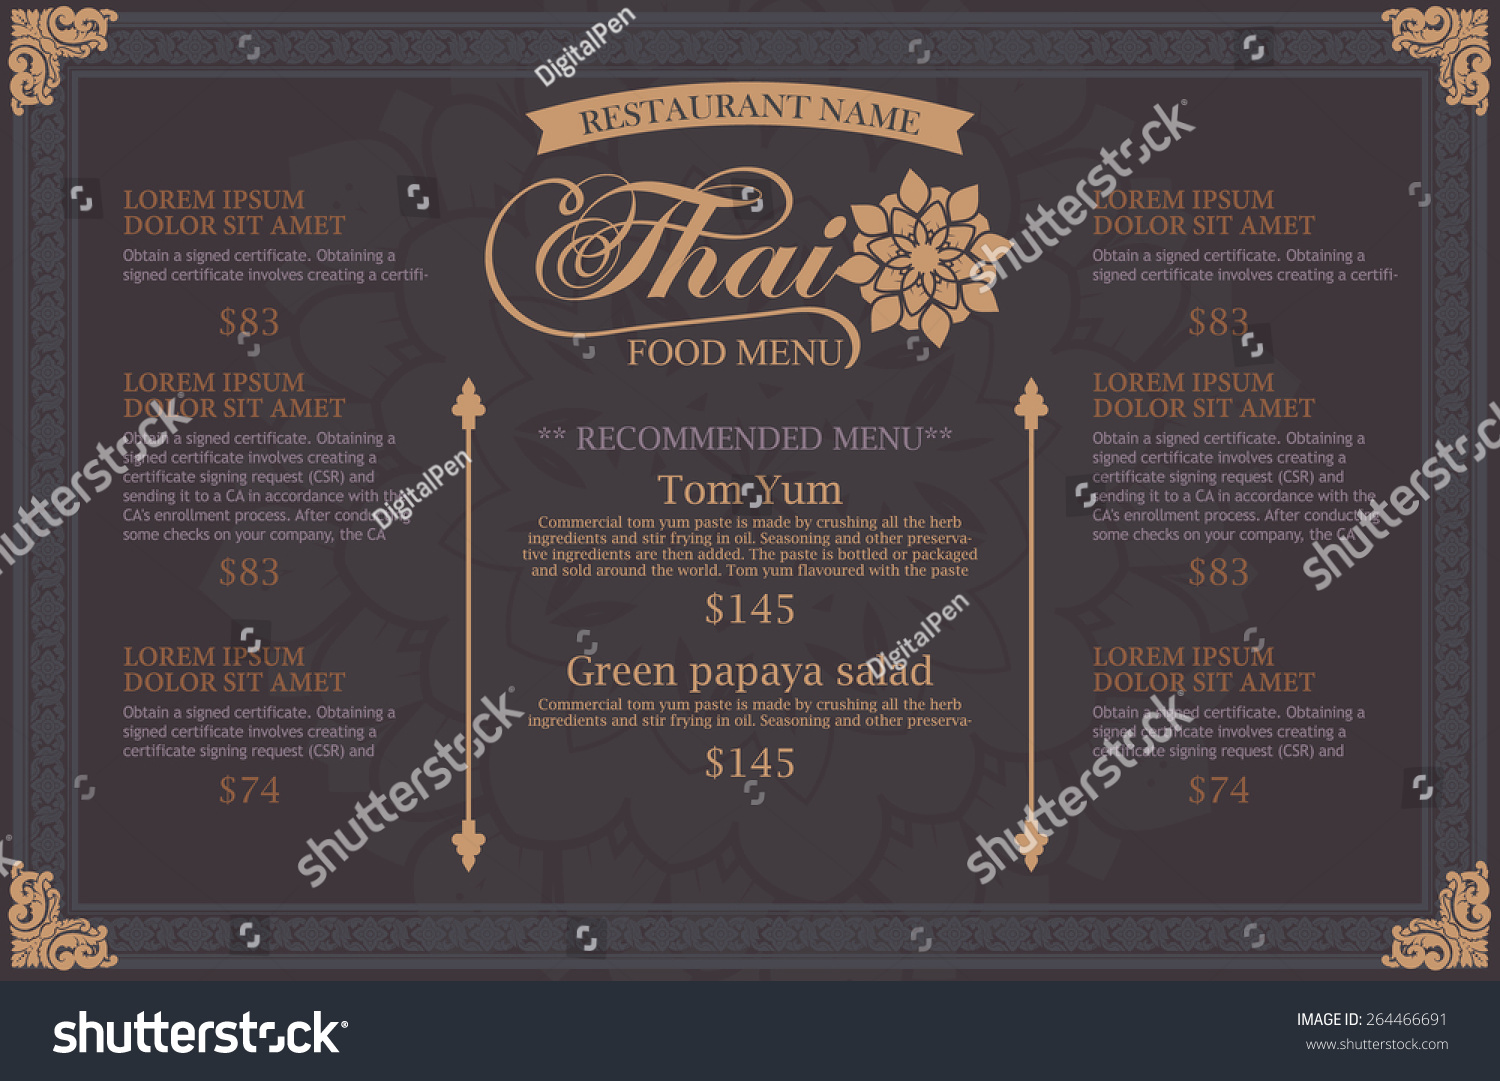 Restaurant menu design thai art stock vector illustration for Artistic cuisine menu